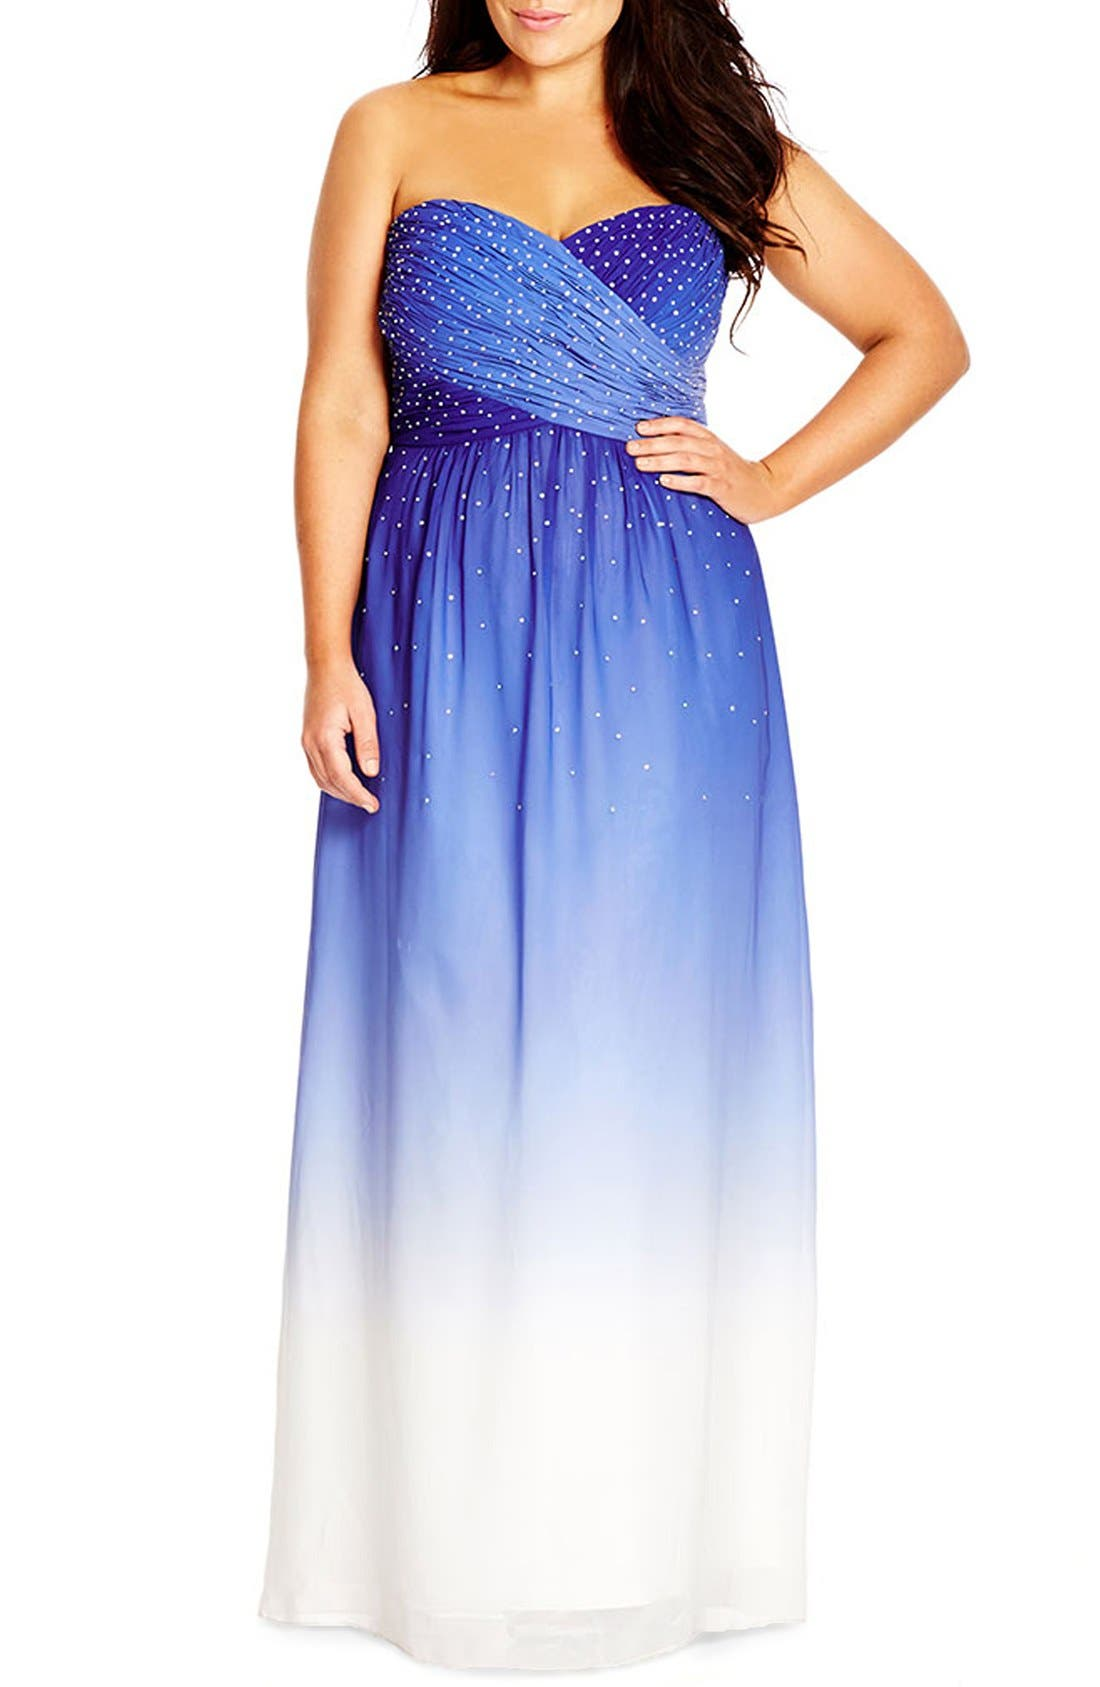 Alternate Image 1 Selected - City Chic 'Enchanted' Embellished Strapless Ombré Maxi Dress (Plus Size)